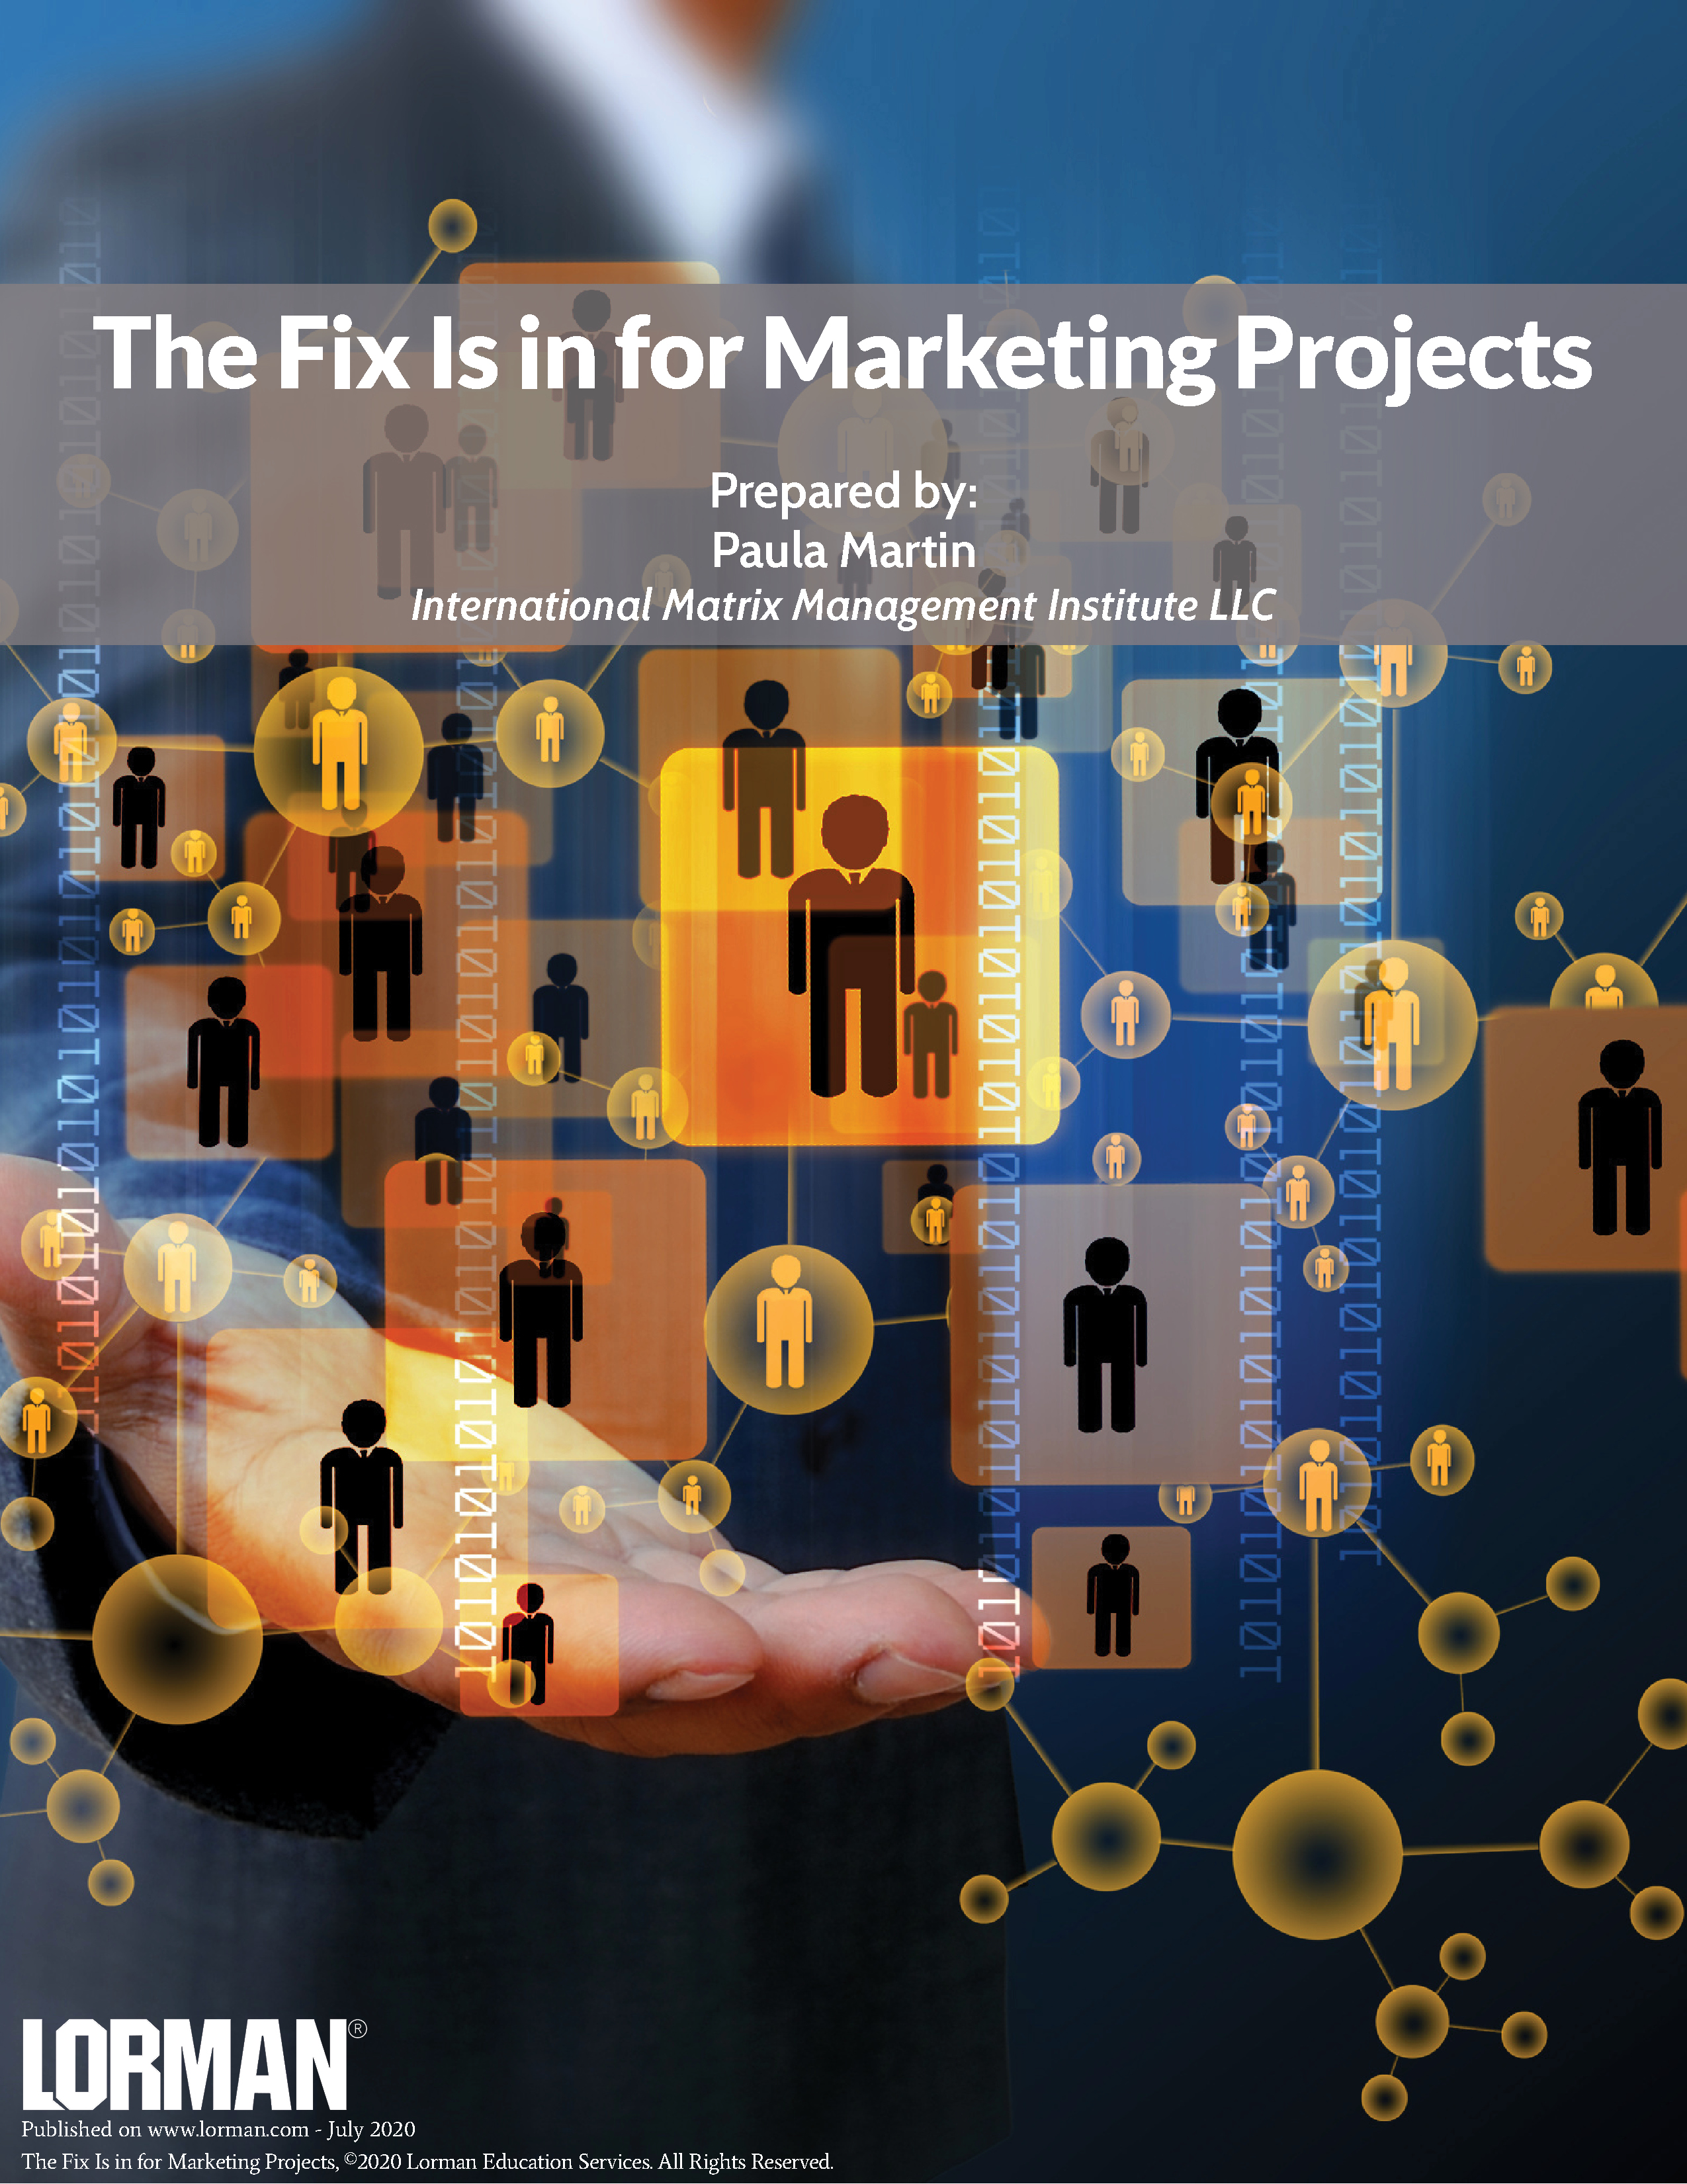 The Fix Is in for Marketing Projects